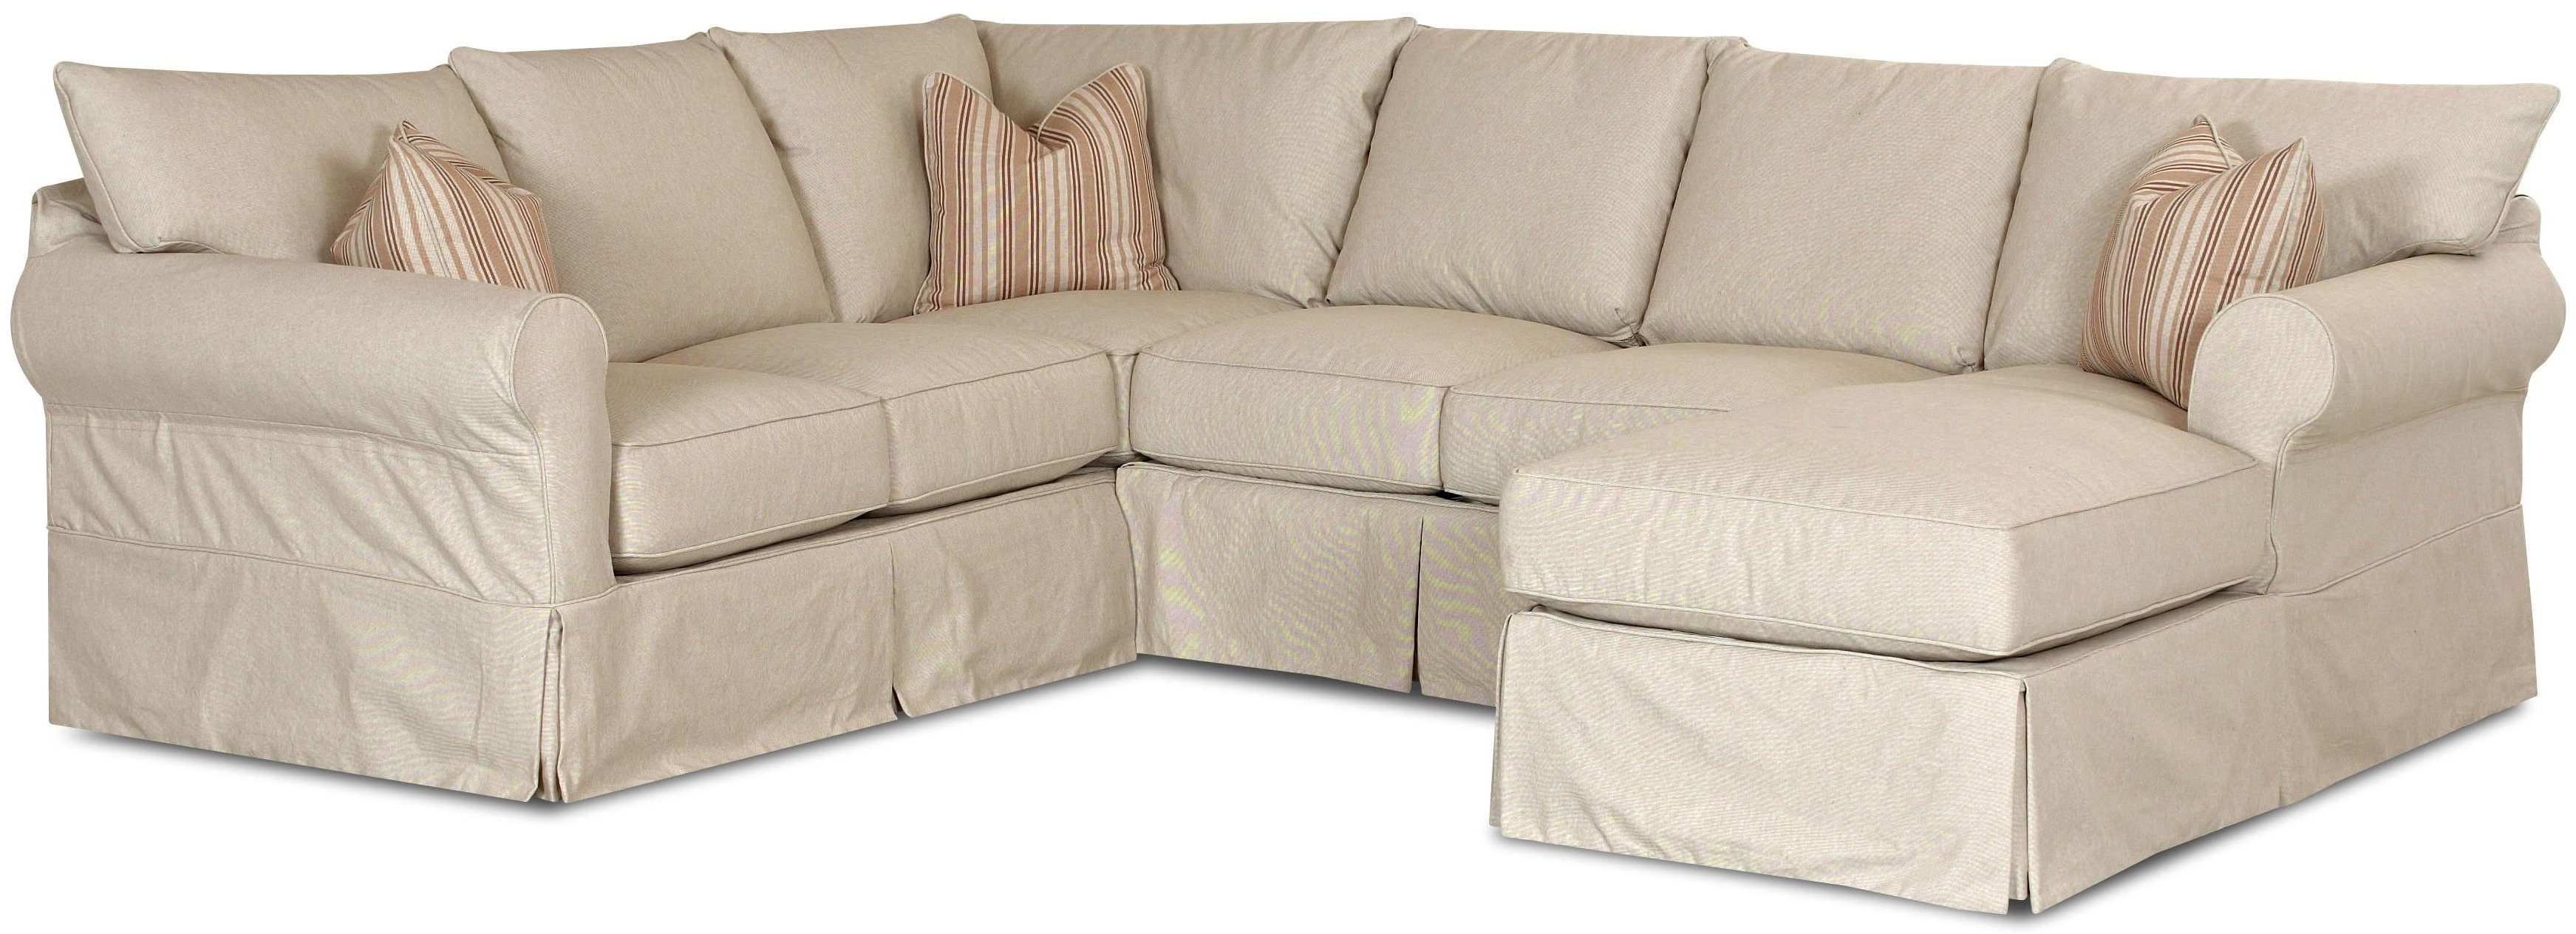 Sectional Couch Slipcovers (View 14 of 15)